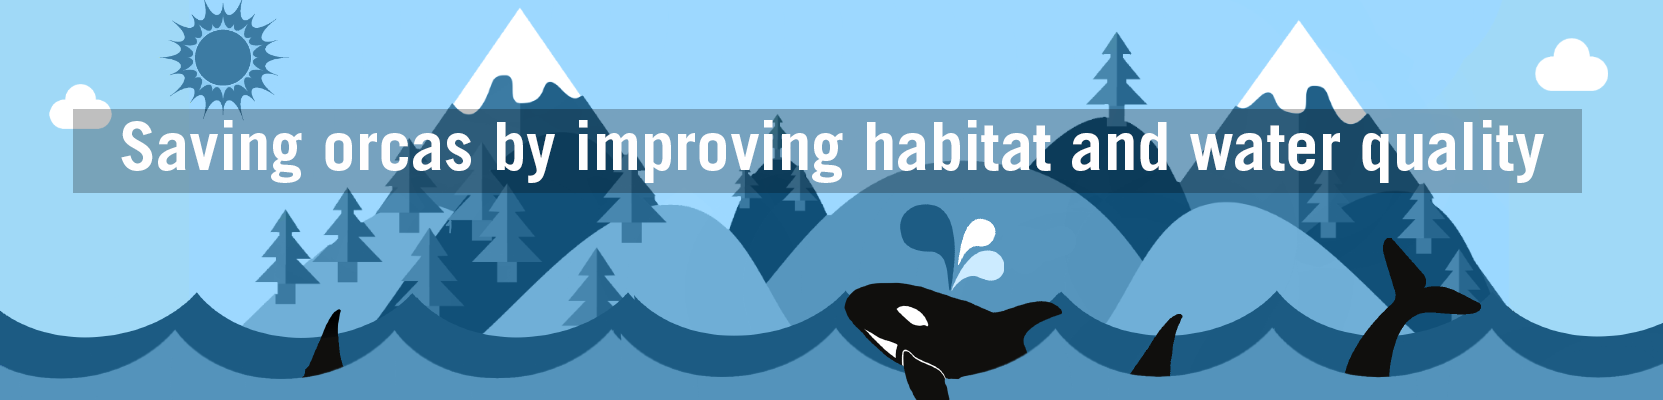 House Democrats are protecting Orcas and addressing climate changes through a series of bills